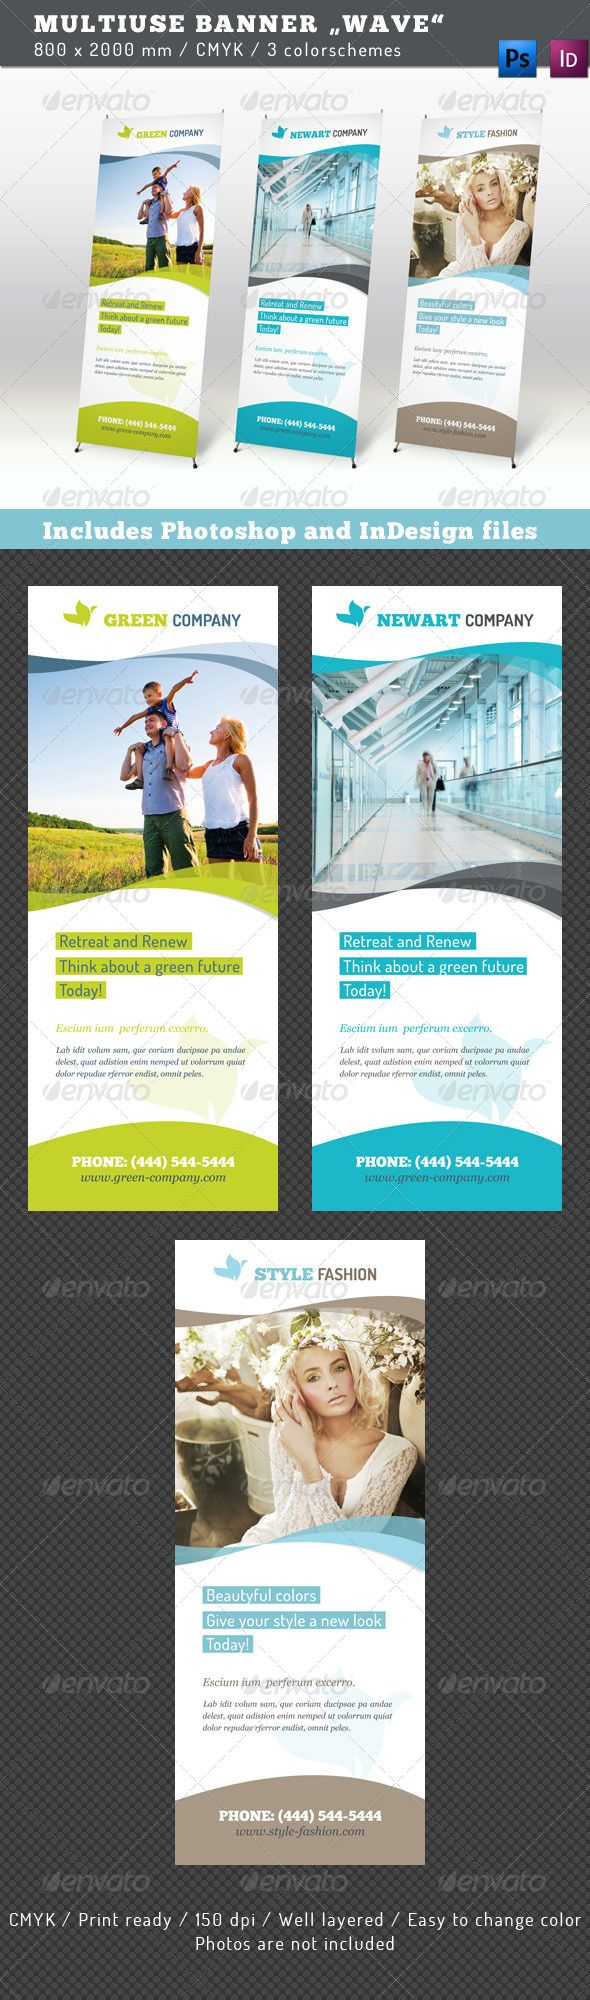 "Multiuse Banner ""Wave"" #GraphicRiver Get the bundle! Multiuse Banner ""Wave"" This templates for a stand display, available in 3 different colorschemes. The format is 800×2000 mm. The files are fully editable and print ready. Features: 3 Photoshop files with the different colorschemes 3 files InDesign CS5 .indd, 3 files CS4 version .idml and 3 files CS3 .inx All templates are layered for an easier modification Graphical elements as vector shapes included Fonts: Chunk five Dosis Georgia (System…"